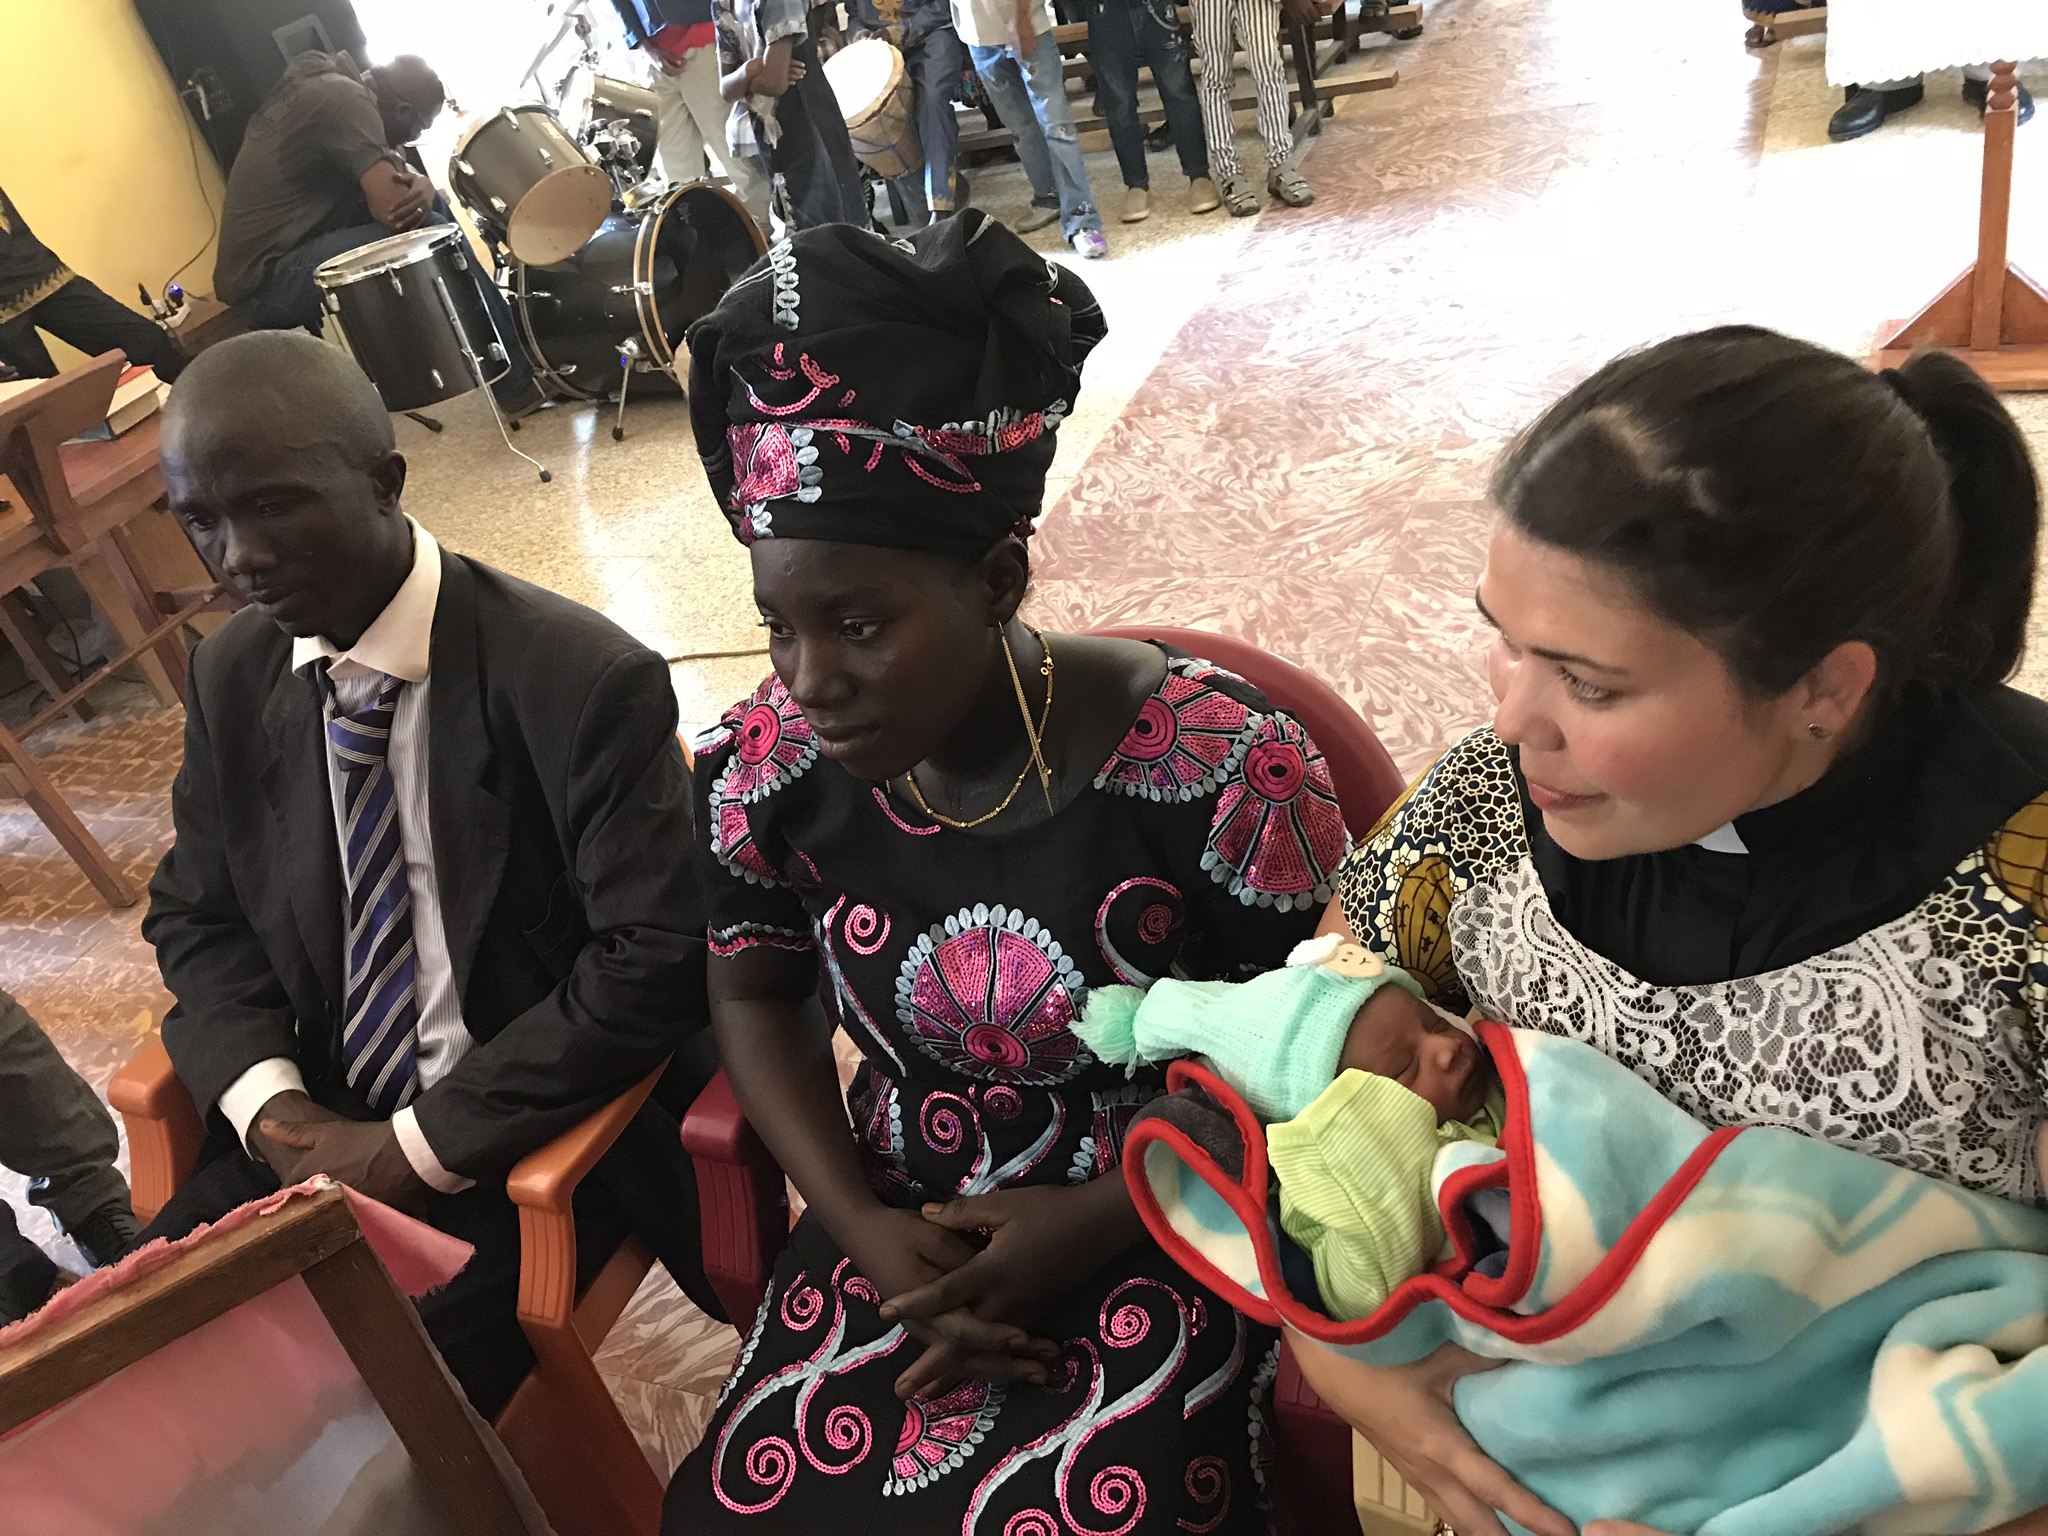 """The time came for the naming. After the people came forward to give their financial gifts to the family, the pastor named the child """"Rev. Katherine Meek Kaingbanja"""". Then they had me go sit next to them and handed her to me. As I held her people came forward to pray over her prophetic words of blessing. It was emotional."""